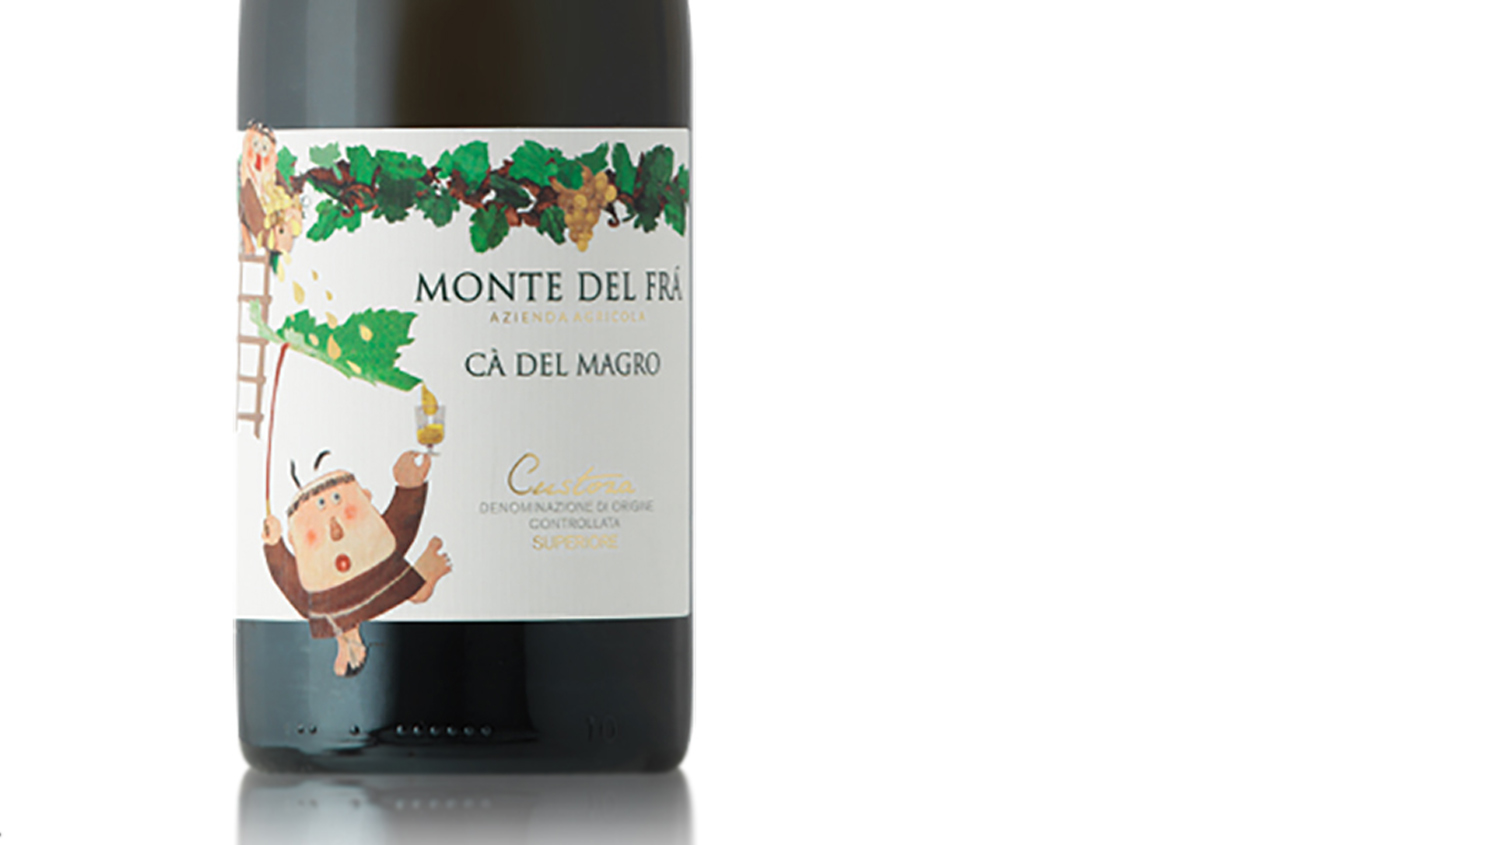 The Monte del Frà Cà Del Magro Custoza is a gorgeous, contemplative Italian white wine blend.